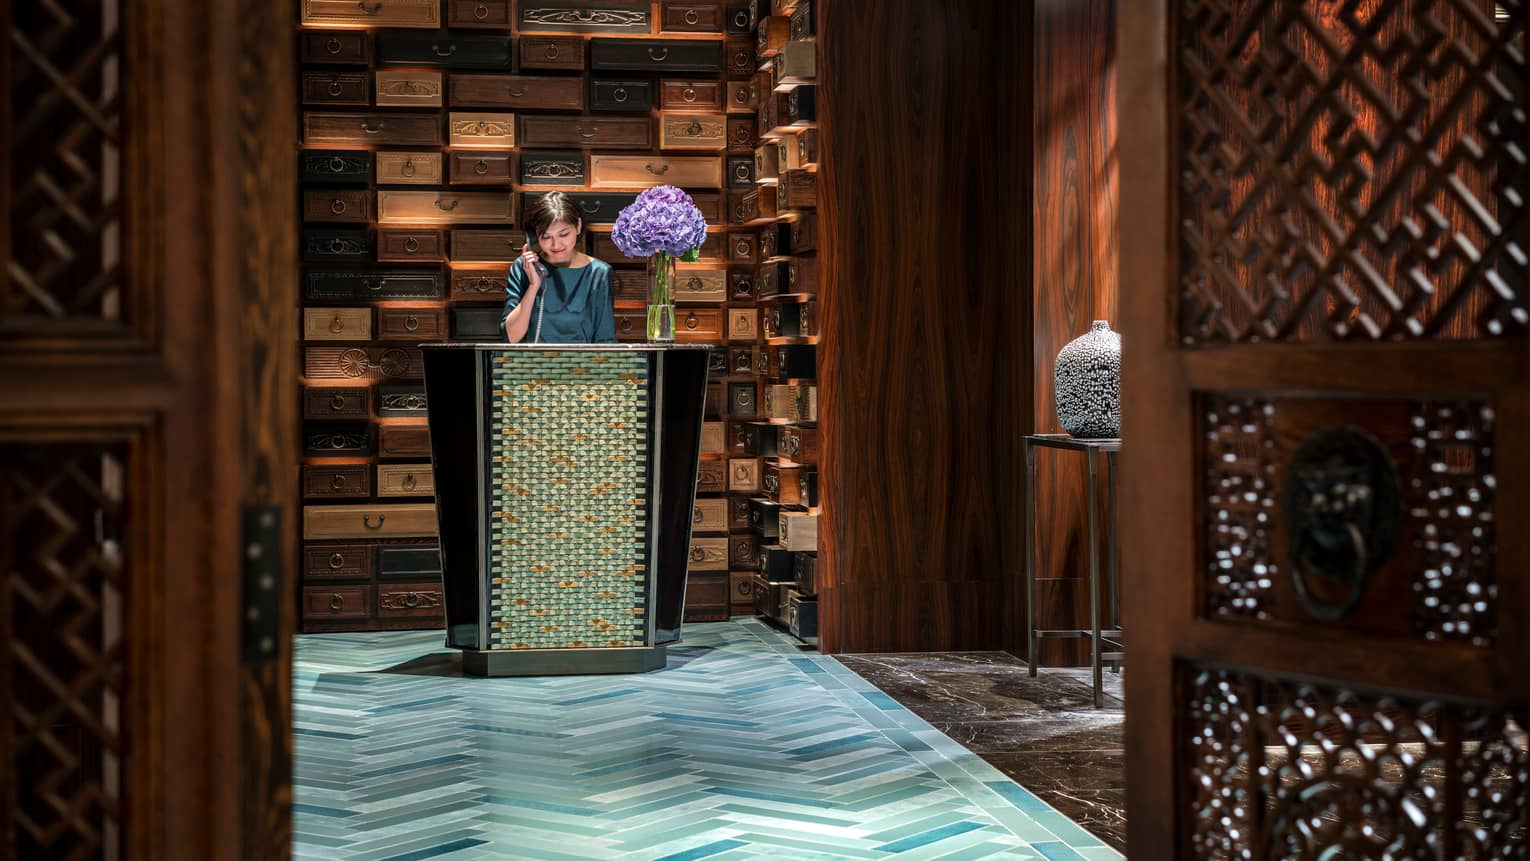 Hotel staff answers telephone at reception desk in front of decorative wall made from wood drawers